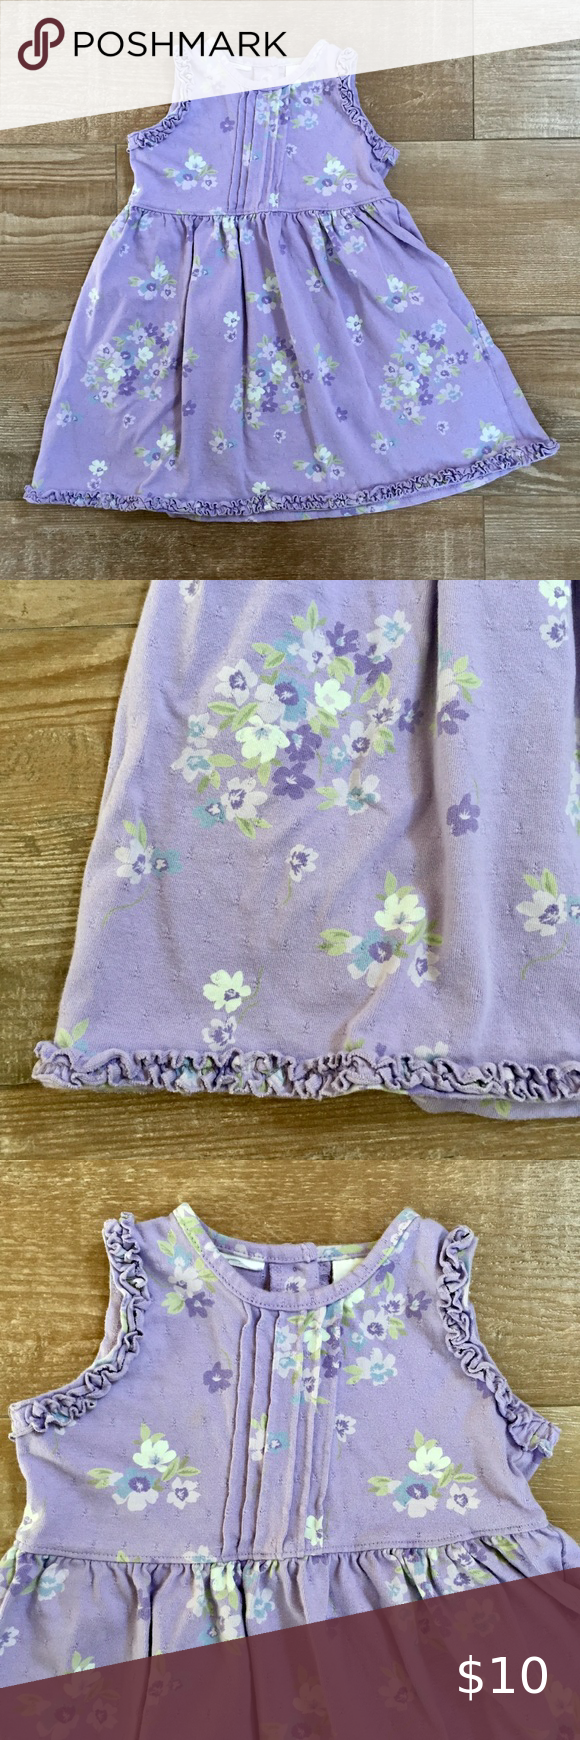 Sold 4t Purple Floral Ruffled Spring Dress In 2020 Dresses Spring Dress Clothes Design [ 1740 x 580 Pixel ]